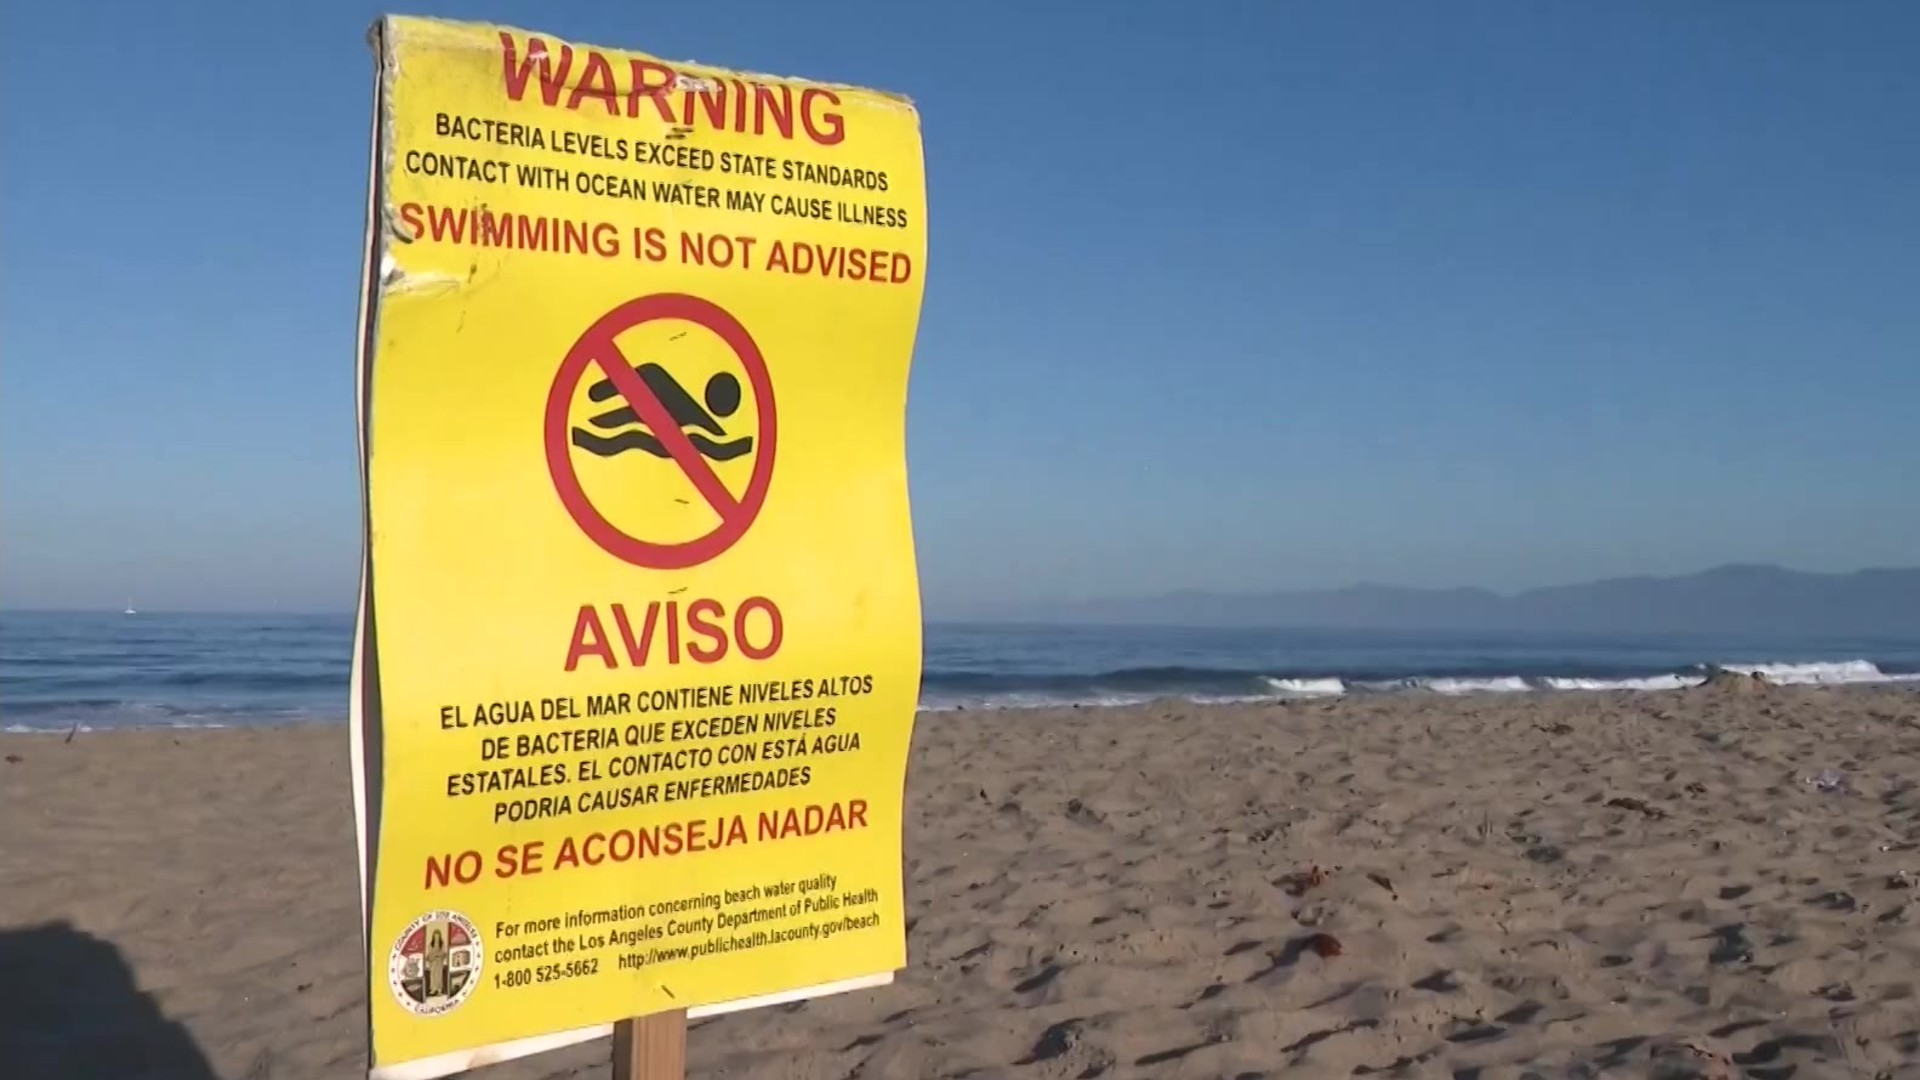 A sign warning swimmers about high bacteria levels is seen on a Southern California beach in this file image. (KTLA)